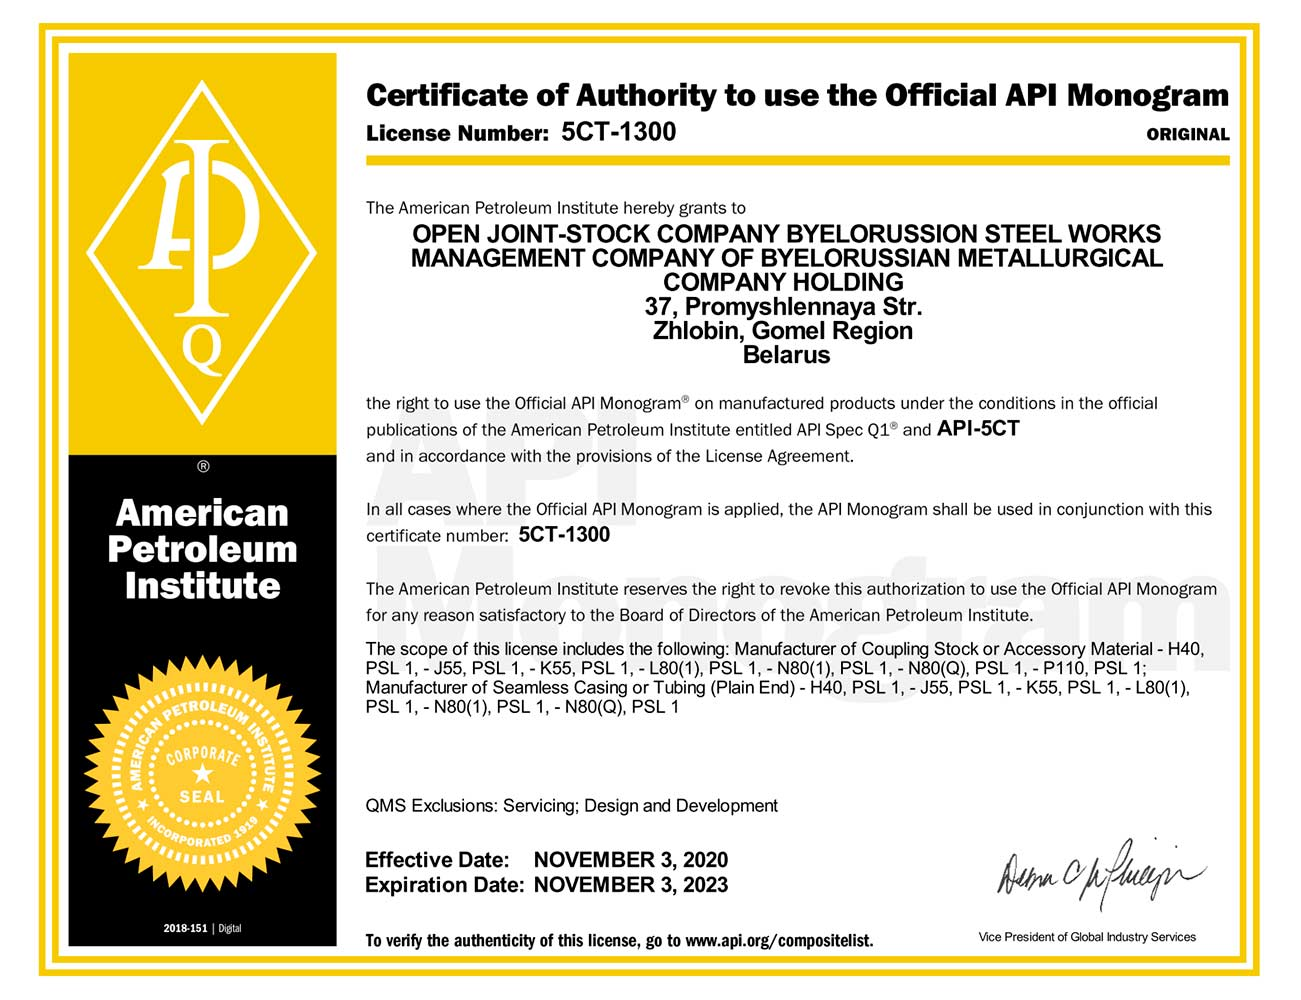 Certificate of Authority № 5CT-1300 (American Petroleum Institute) to use the Original API Monogram – manufacture of coupling stock Group1, H40/PSL 1, J55/PSL 1, K55/PSL 1, N80(1)/PSL 1 and N80(Q)/PSL 1, Group-2, L80(1)/PSL 1, Group-3, P110/PSL 1;  manufacture of seamless casing or tube plain end Group-1, H40/PSL 1, J55/PSL 1, K55/PSL 1, N80(1)/PSL 1 and N80(Q)/PSL 1 , Group-2, L80(1)/PSL1 (the scope is expanded).